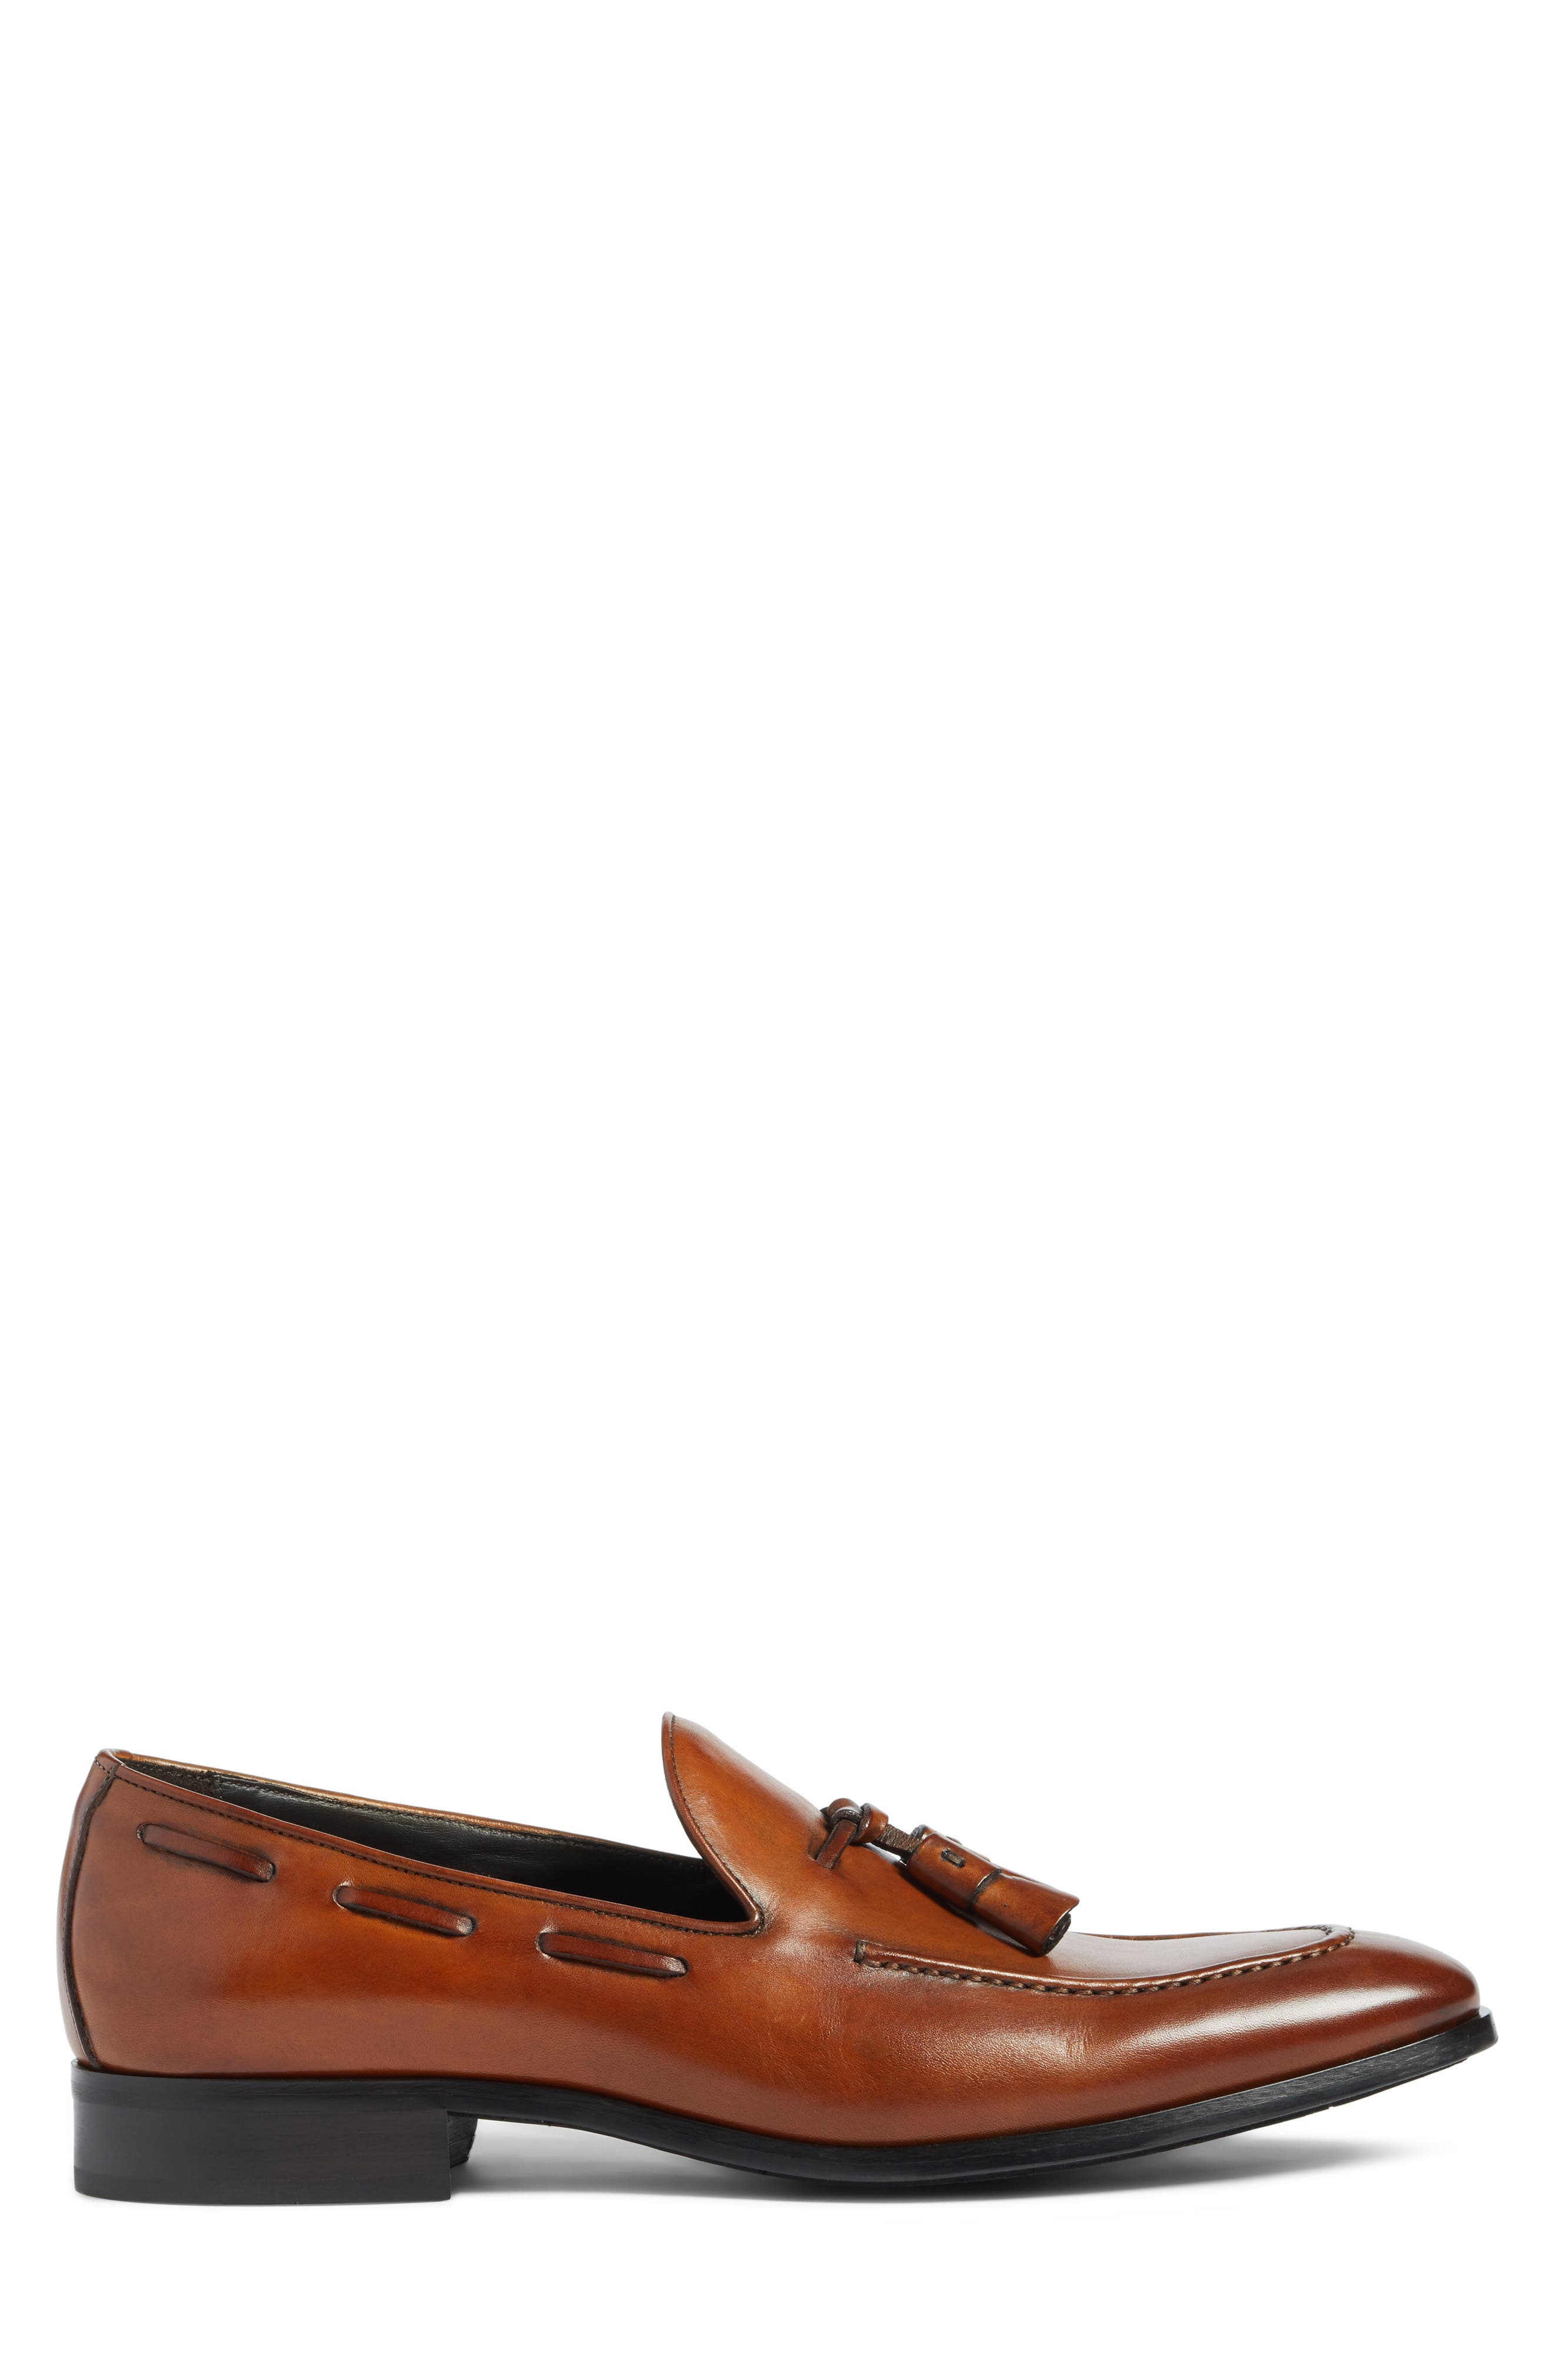 Barclay Tassel Loafer,                             Alternate thumbnail 3, color,                             COGNAC LEATHER